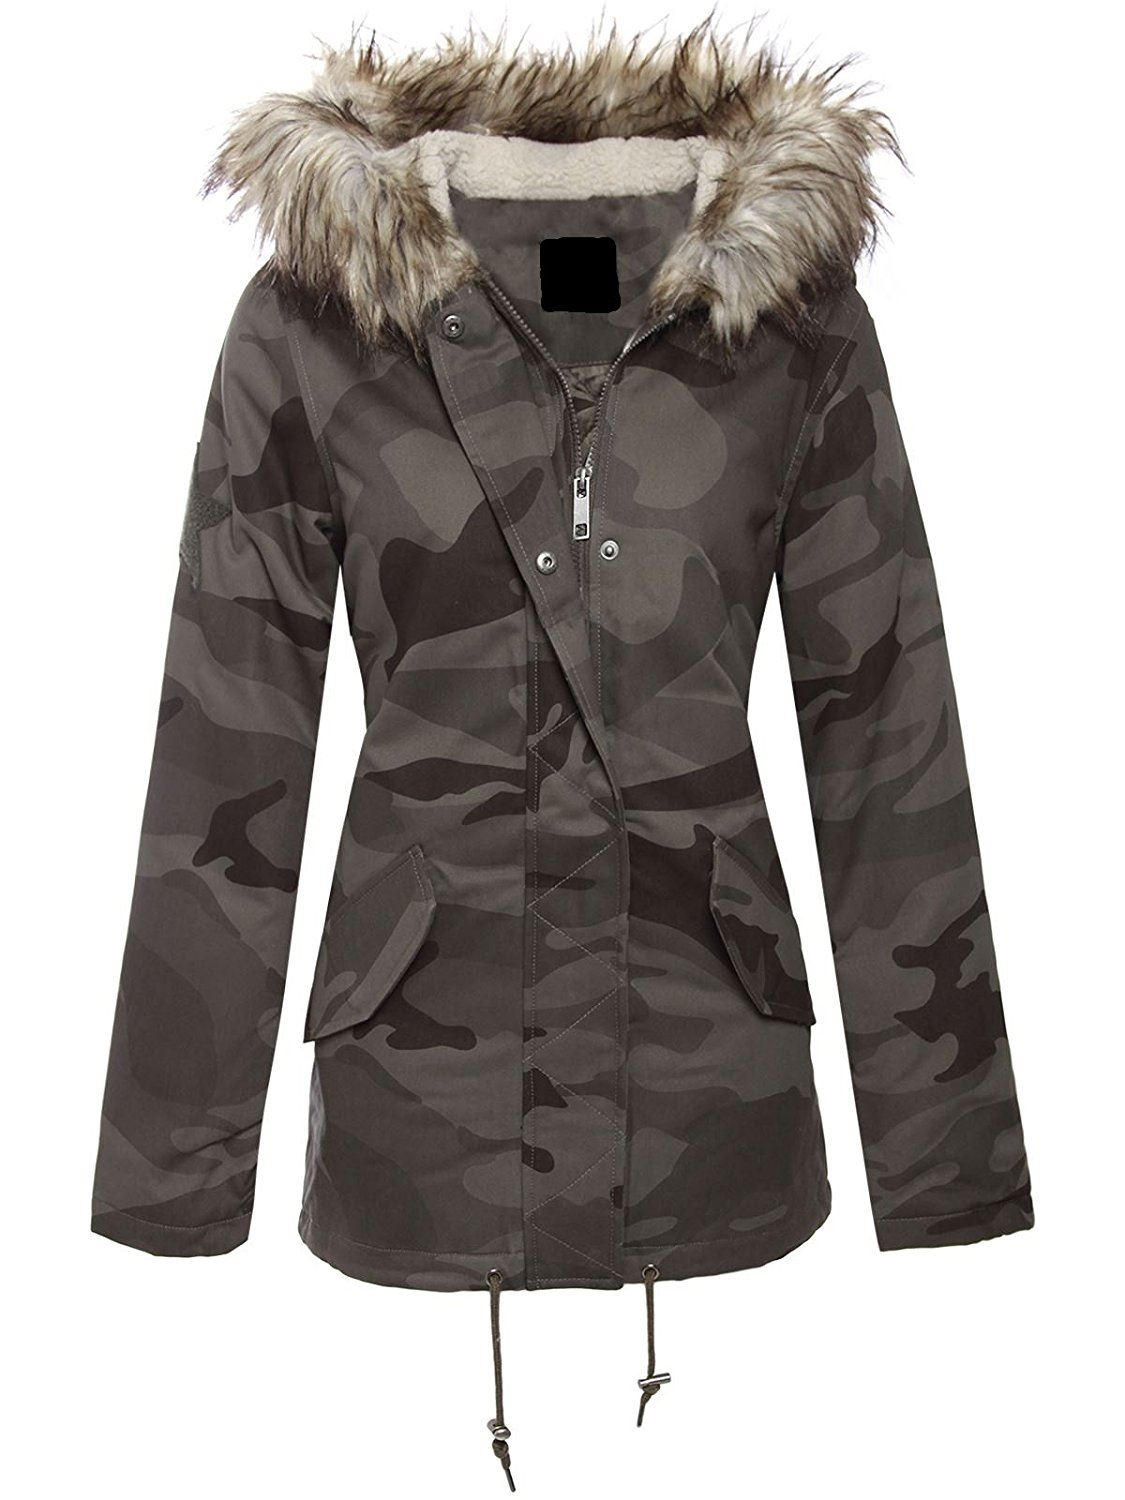 neue damen khaki camo blonde pelz kapuze winter parka. Black Bedroom Furniture Sets. Home Design Ideas